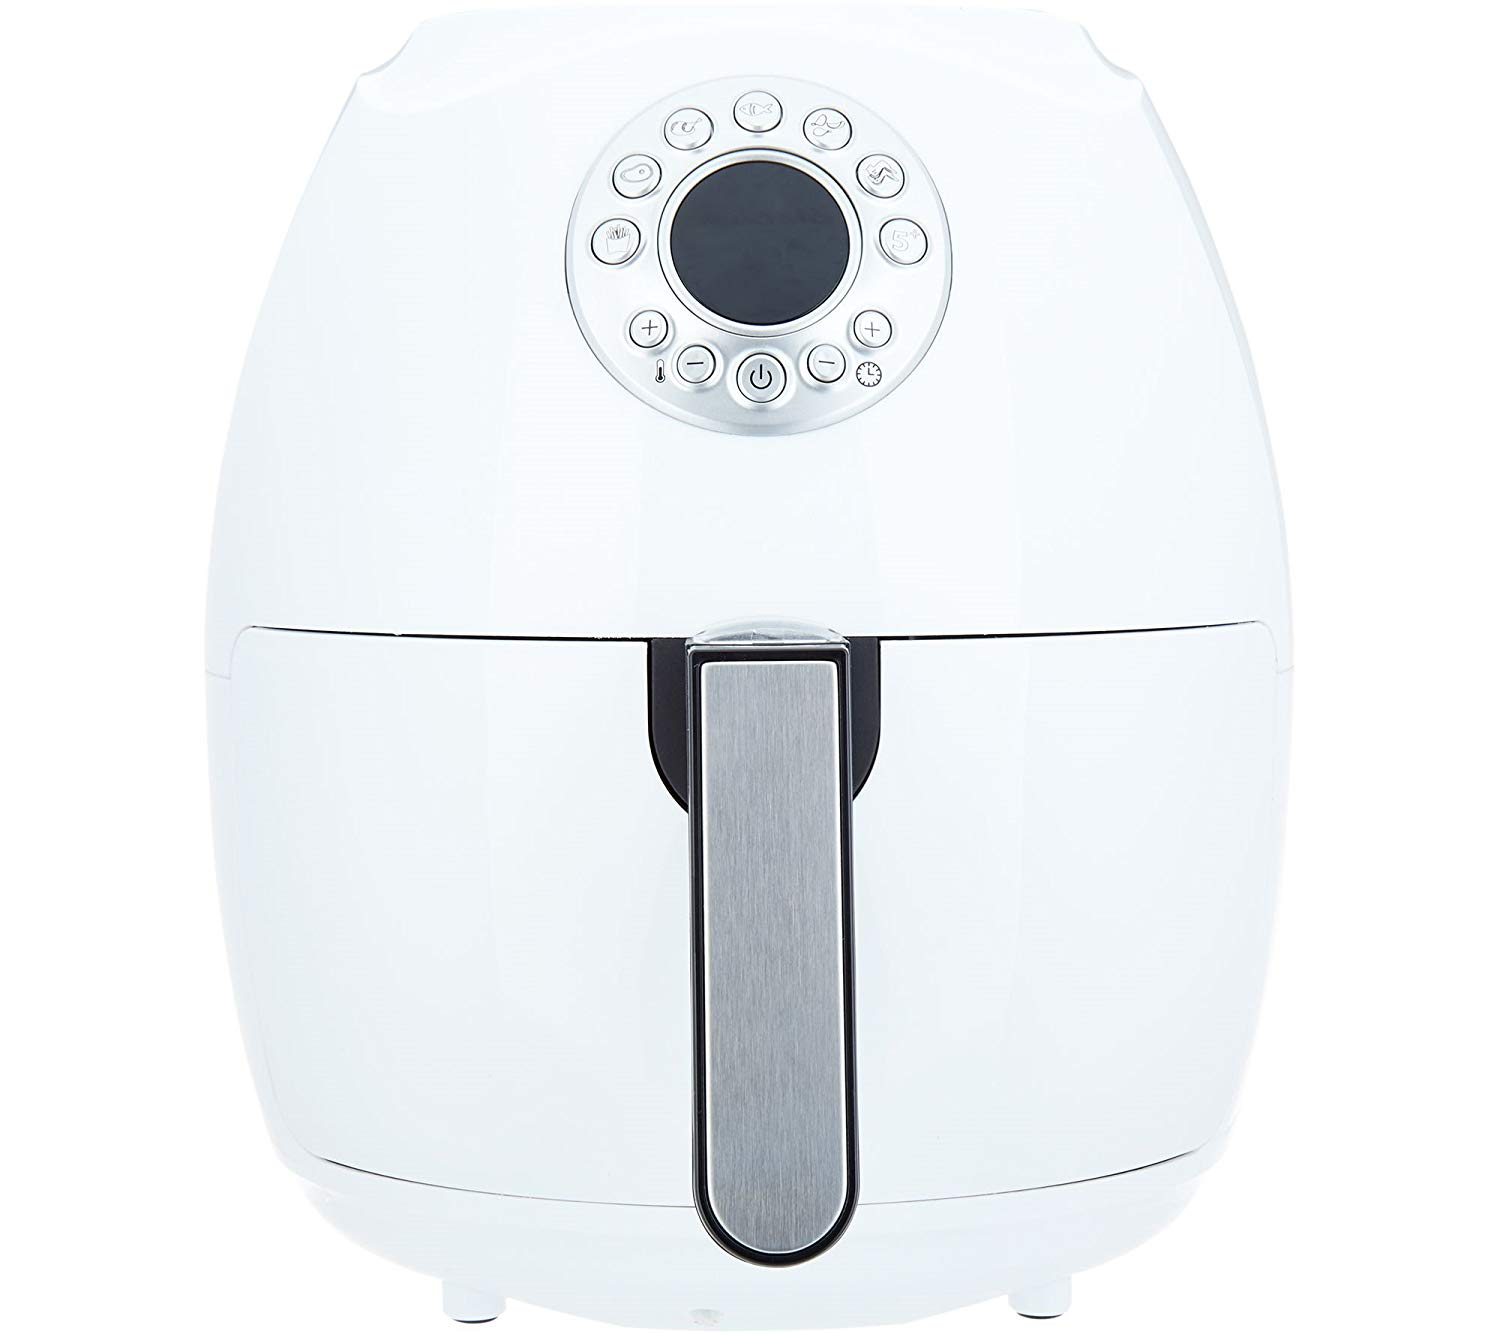 "Cook's Essentials 600187470292 3.4-Qt Digital w/Presets & Pans (White), Air fryer 12-1/2""H x 10-1/2""Diam, weighs 9 lbs"